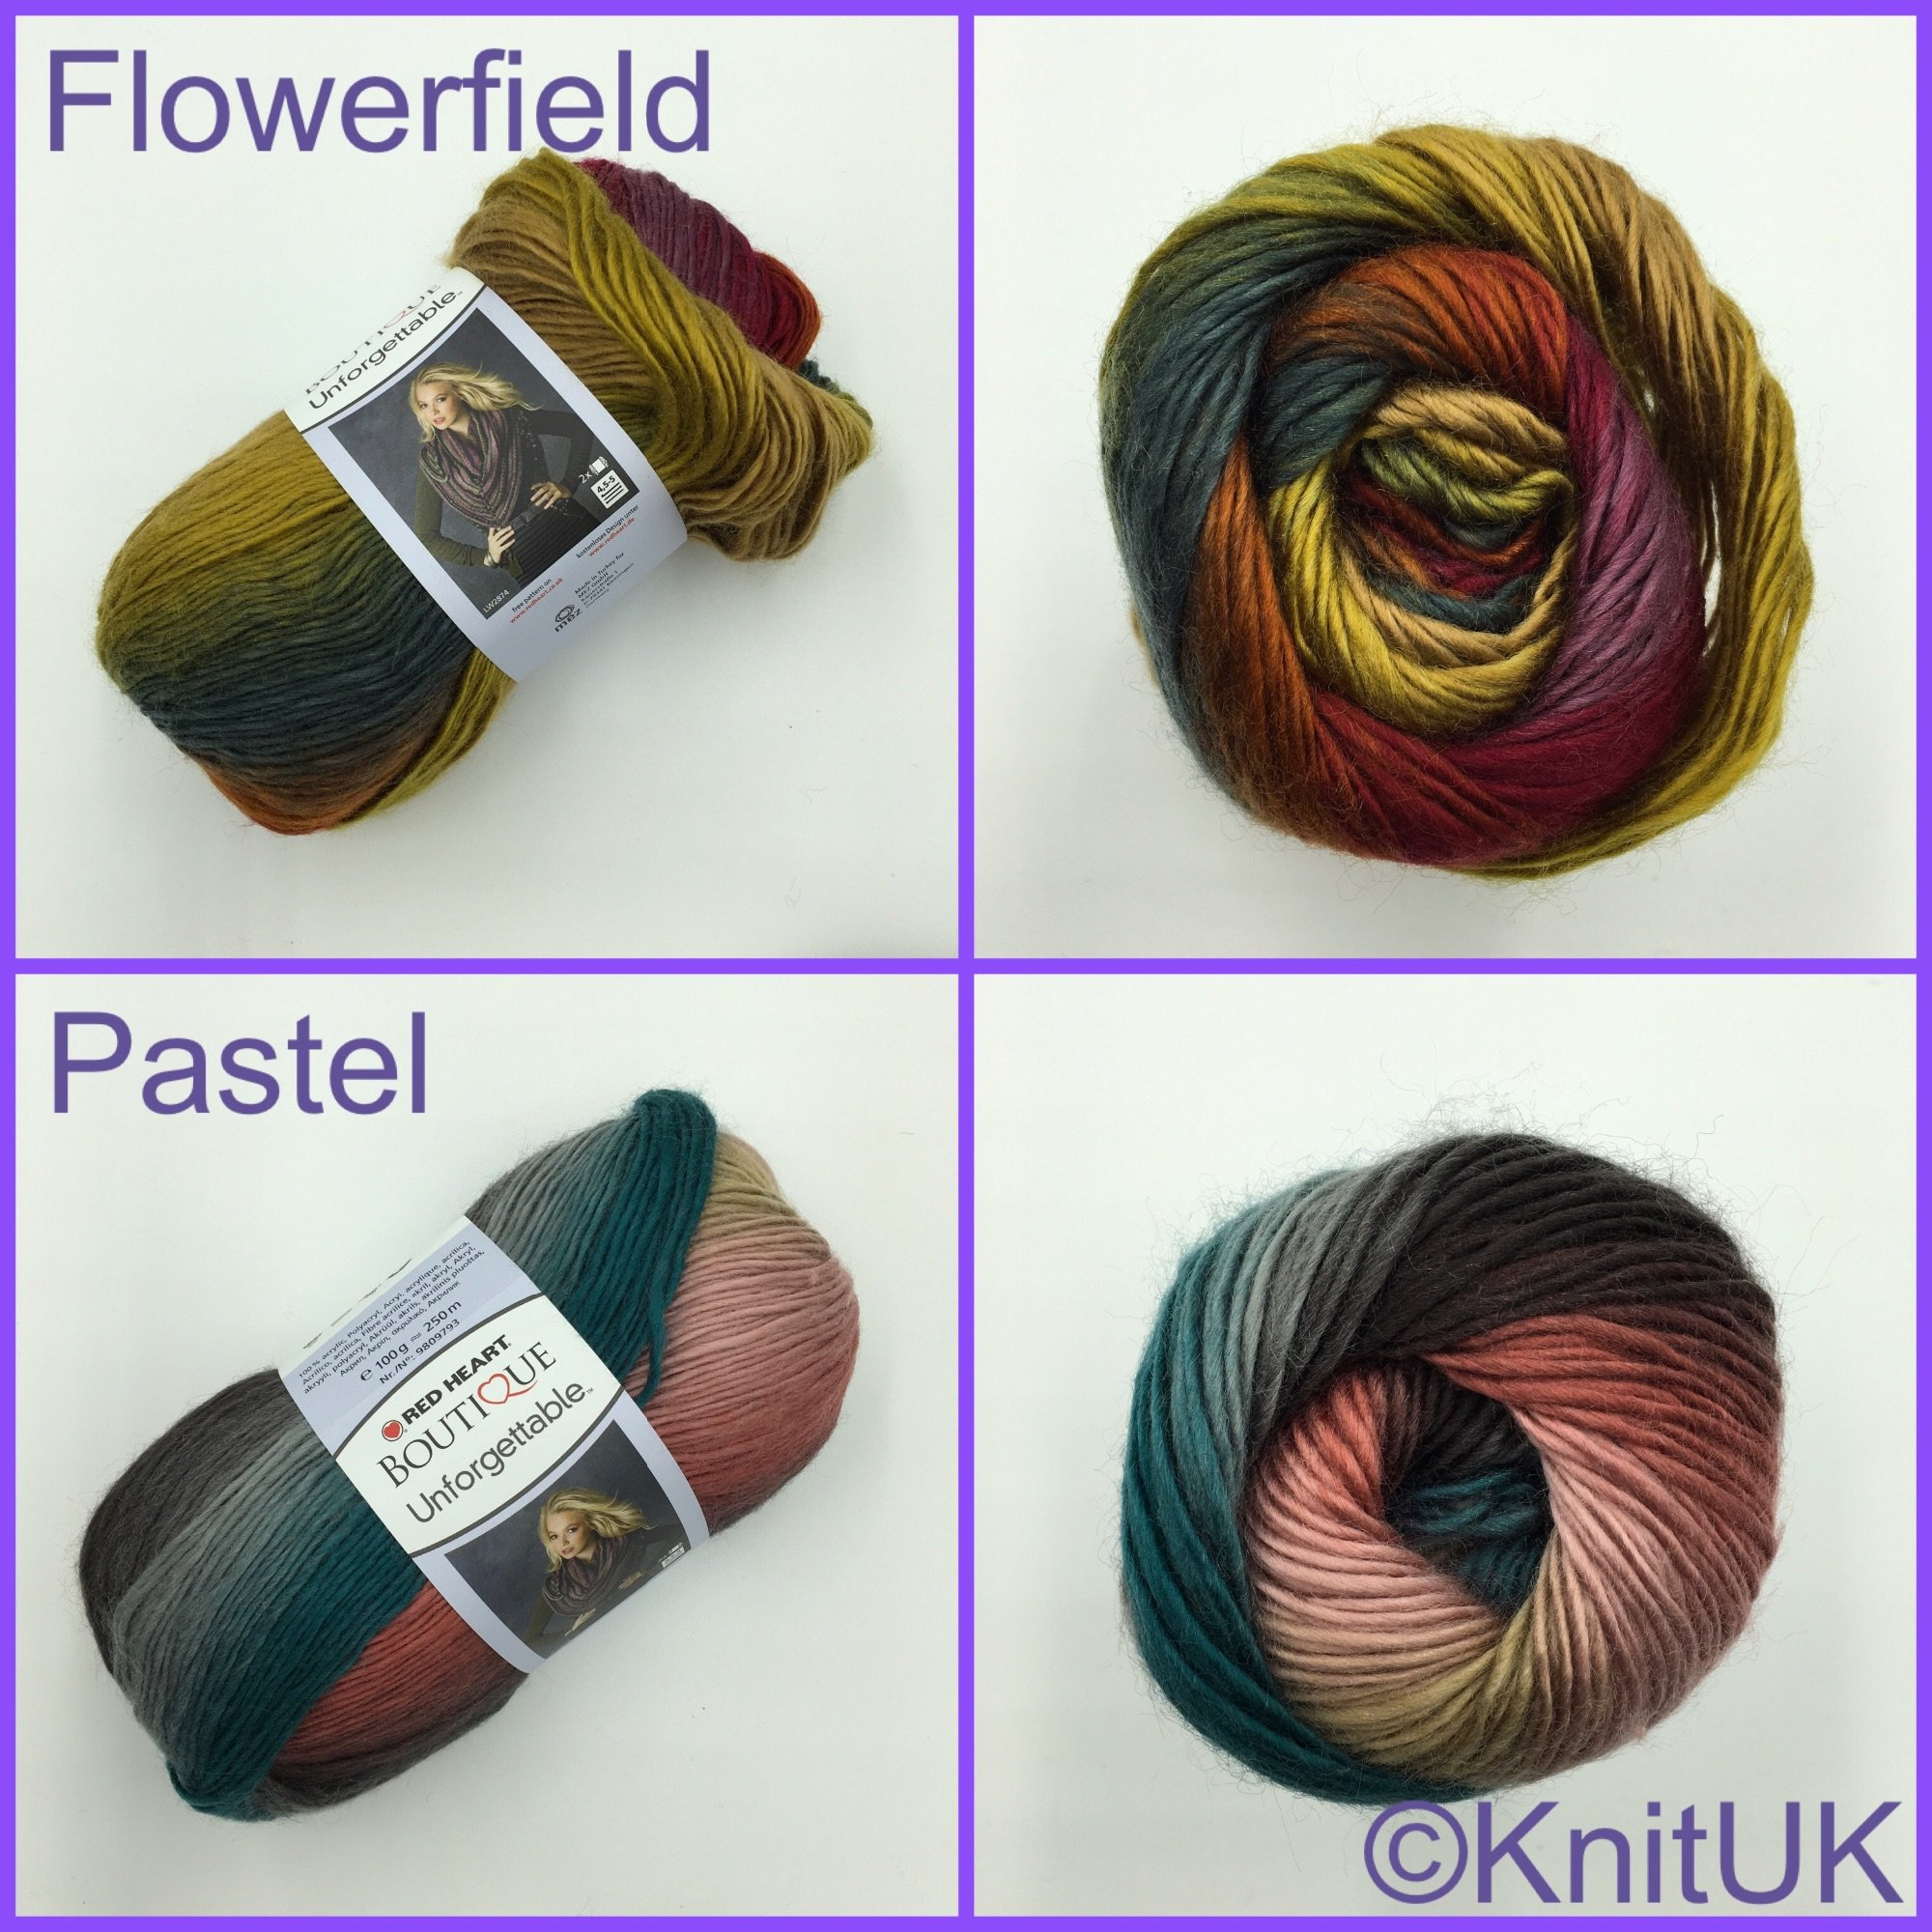 Red Heart Unforgetable yarn colour flowerfield pastel